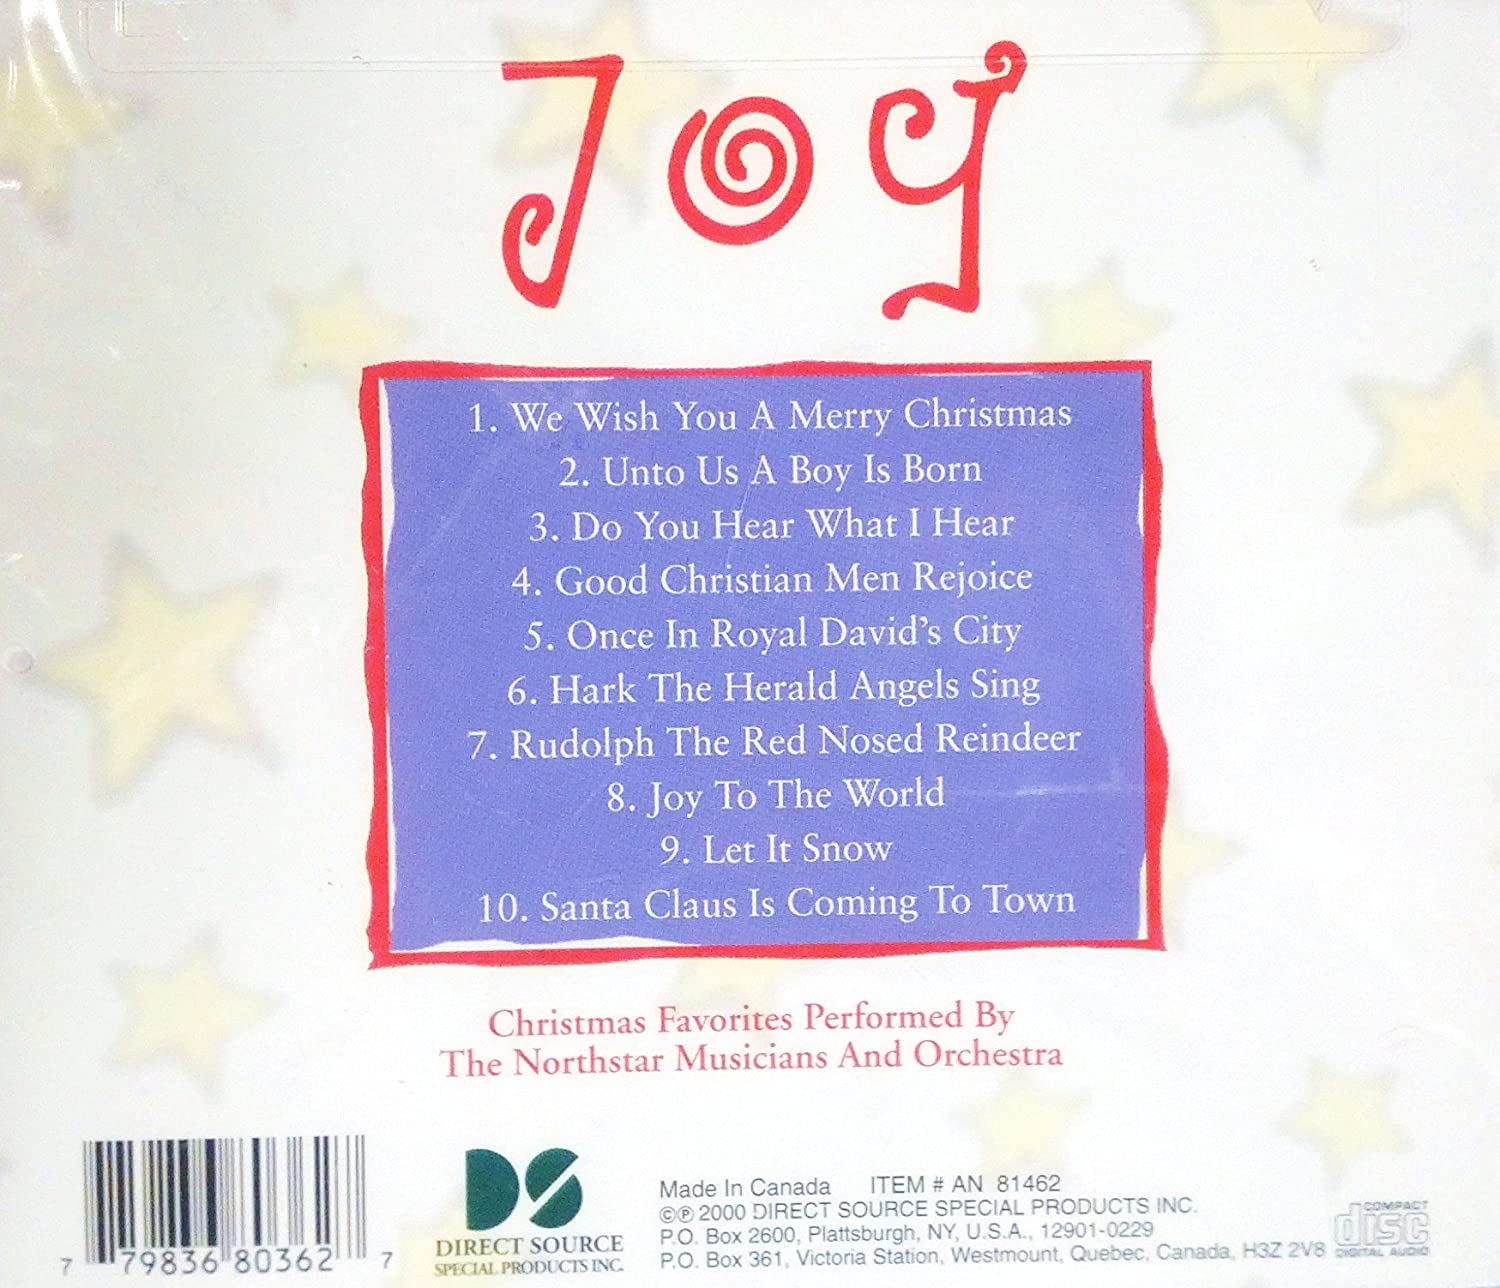 Joy Christmas Favorites Performed By The Northstar Orchestra: Amazon ...